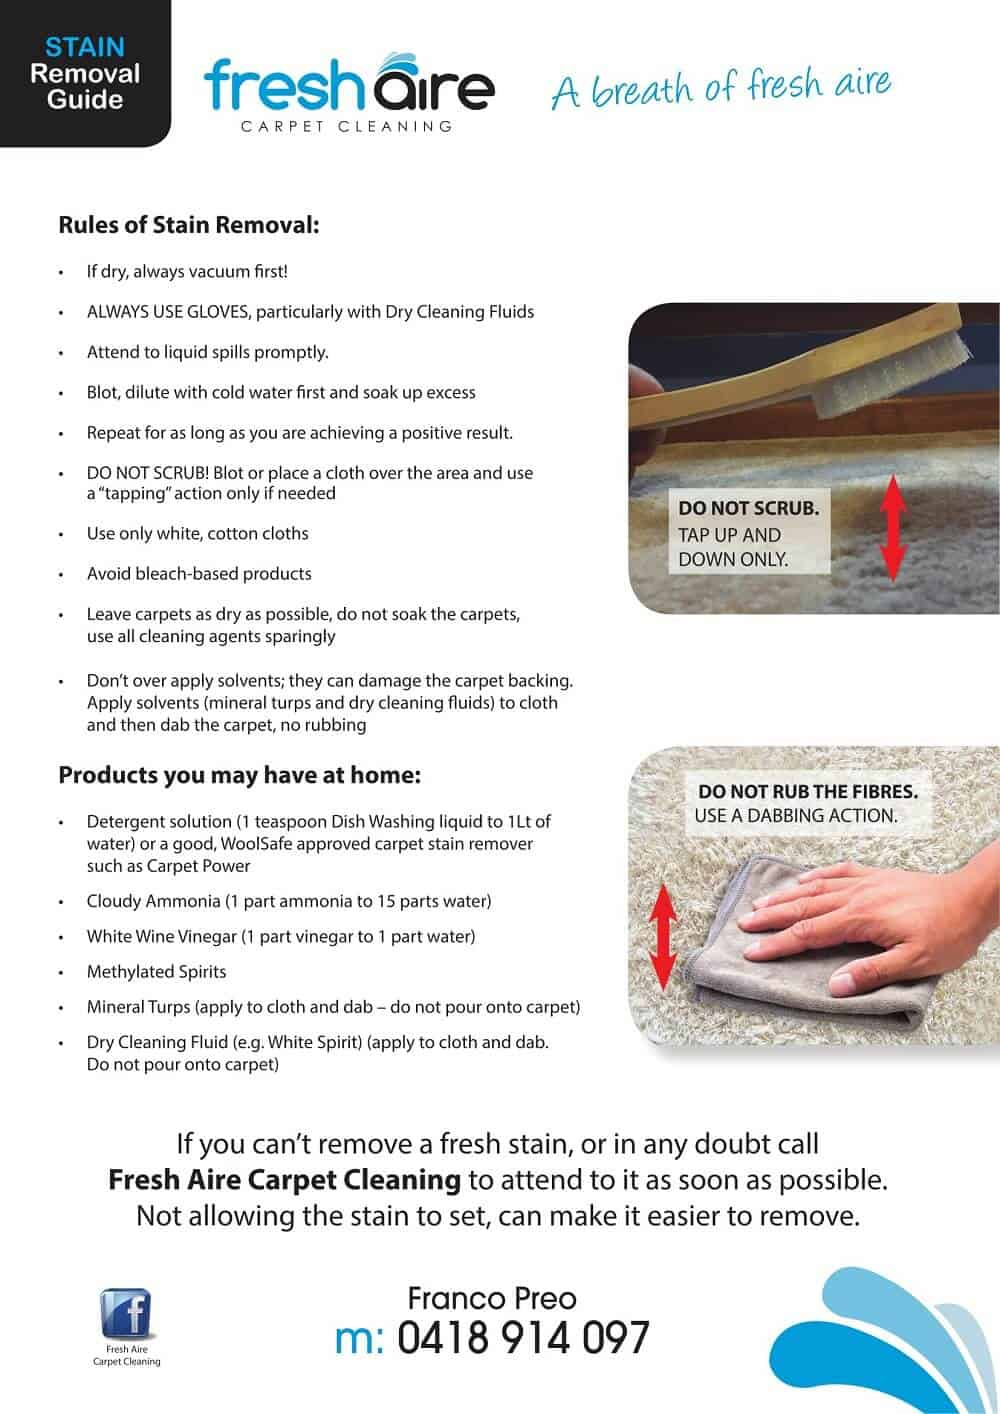 Stain-Removal-Guide 2